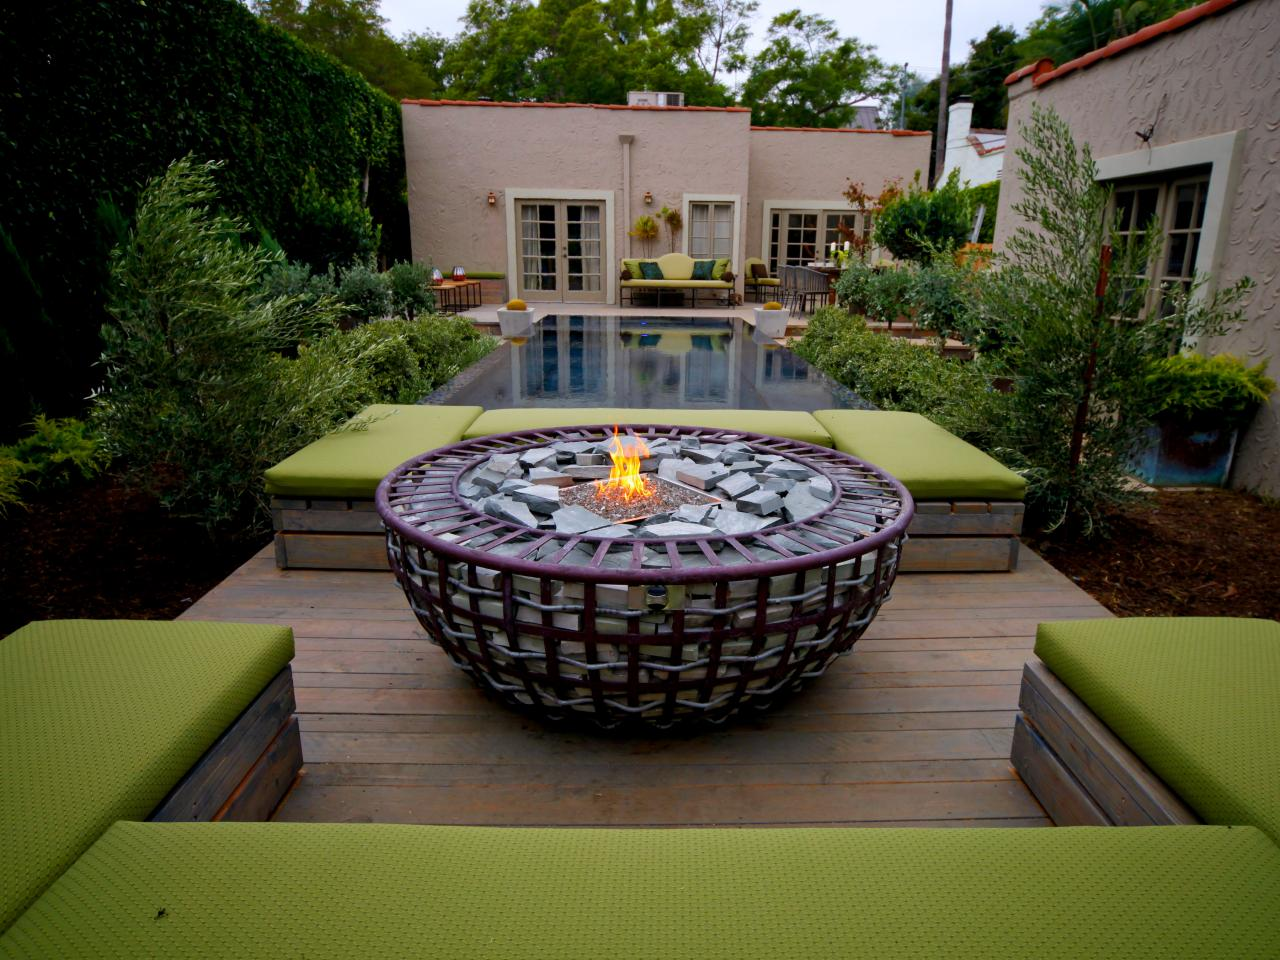 18 luxurious outdoor fire pit design ideas - Outdoor Fire Pit Design Ideas